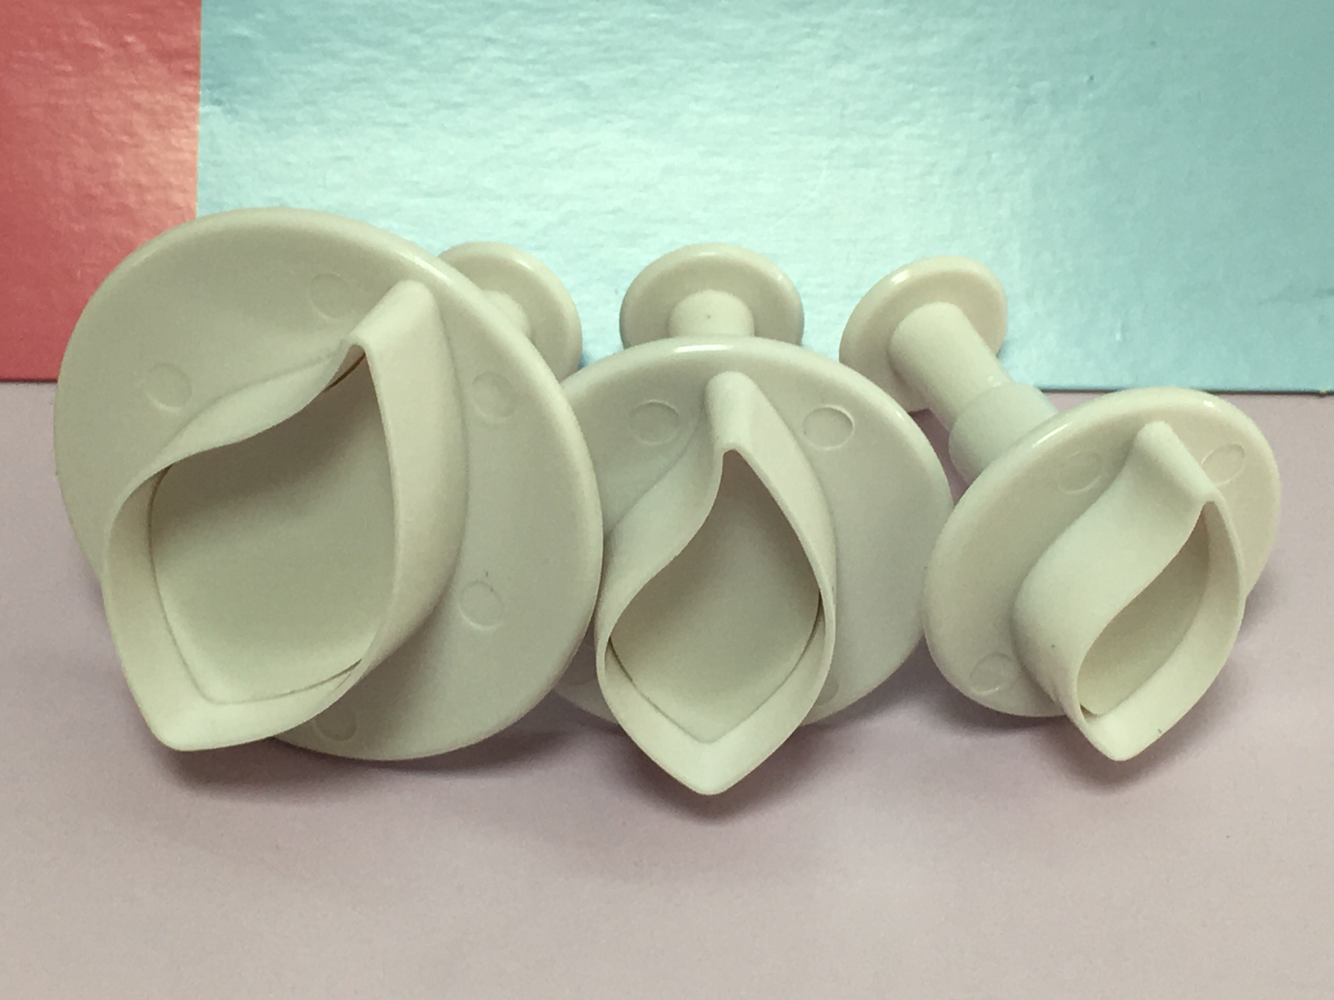 SALE!!! Cake Star Plunger Cutters Curved Leaf set of 3 -Κουπάντ Κυρτό Φύλλο με Εκβολέα -3 τεμ.